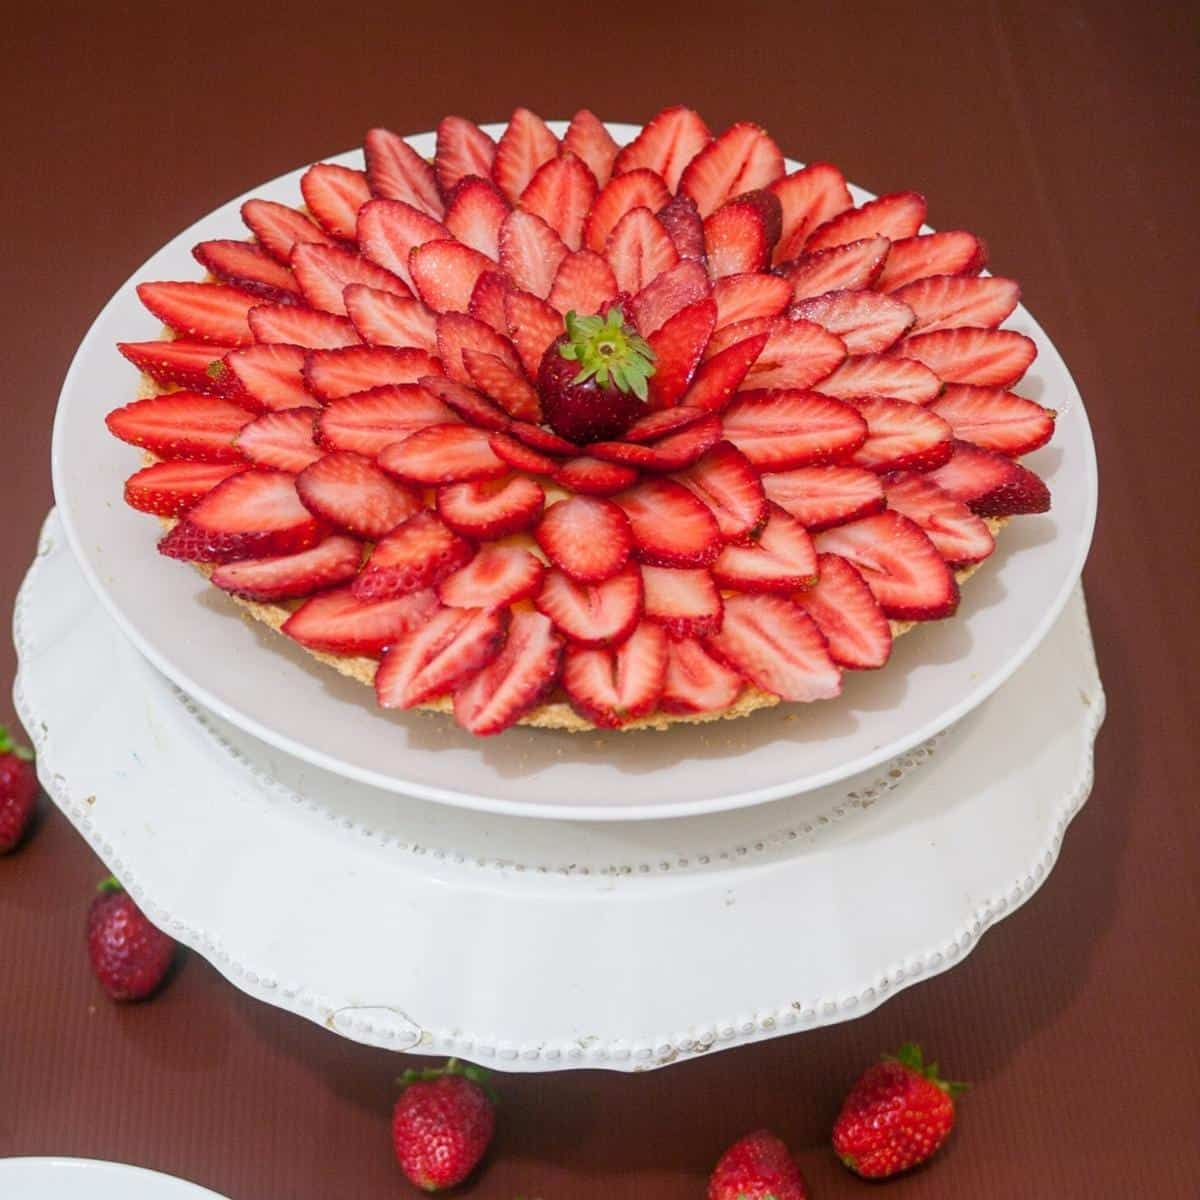 A fruit tart on a cake stand